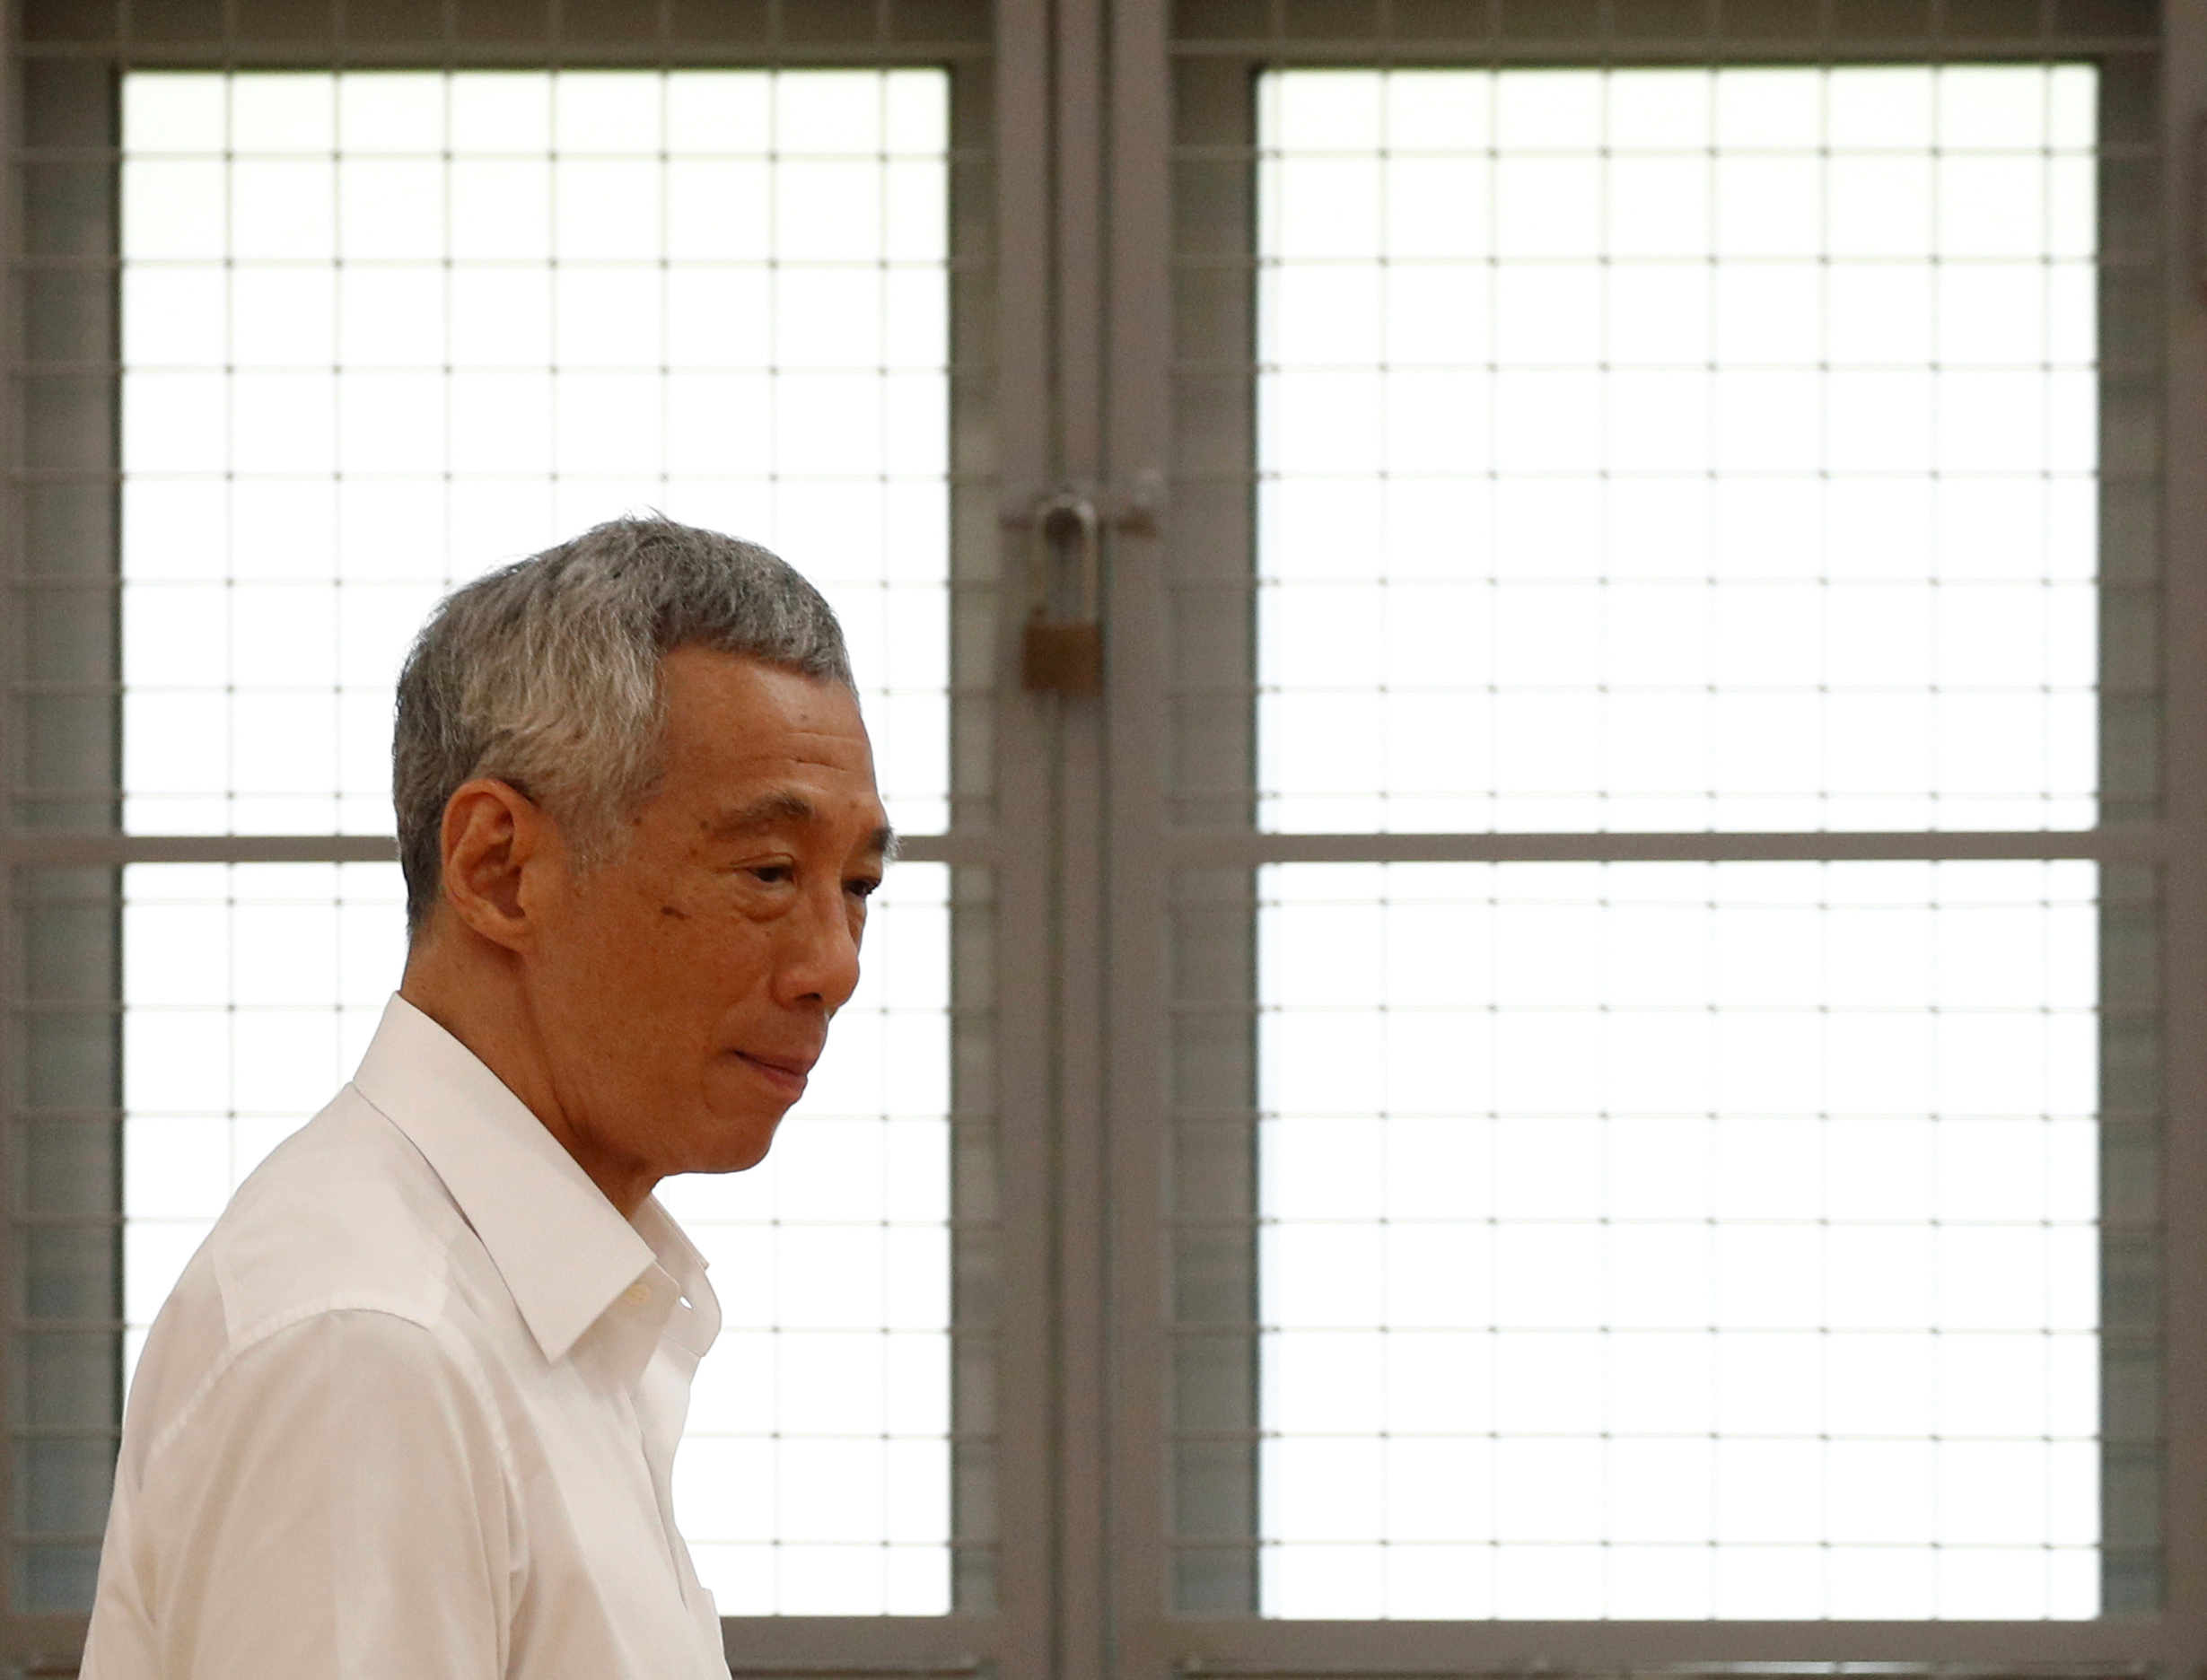 Singapore's Prime Minister Lee Hsien Loong of the People's Action Party arrives to give a speech at a nomination center ahead of the general election in Singapore June 30, 2020. REUTERS/Edgar Su